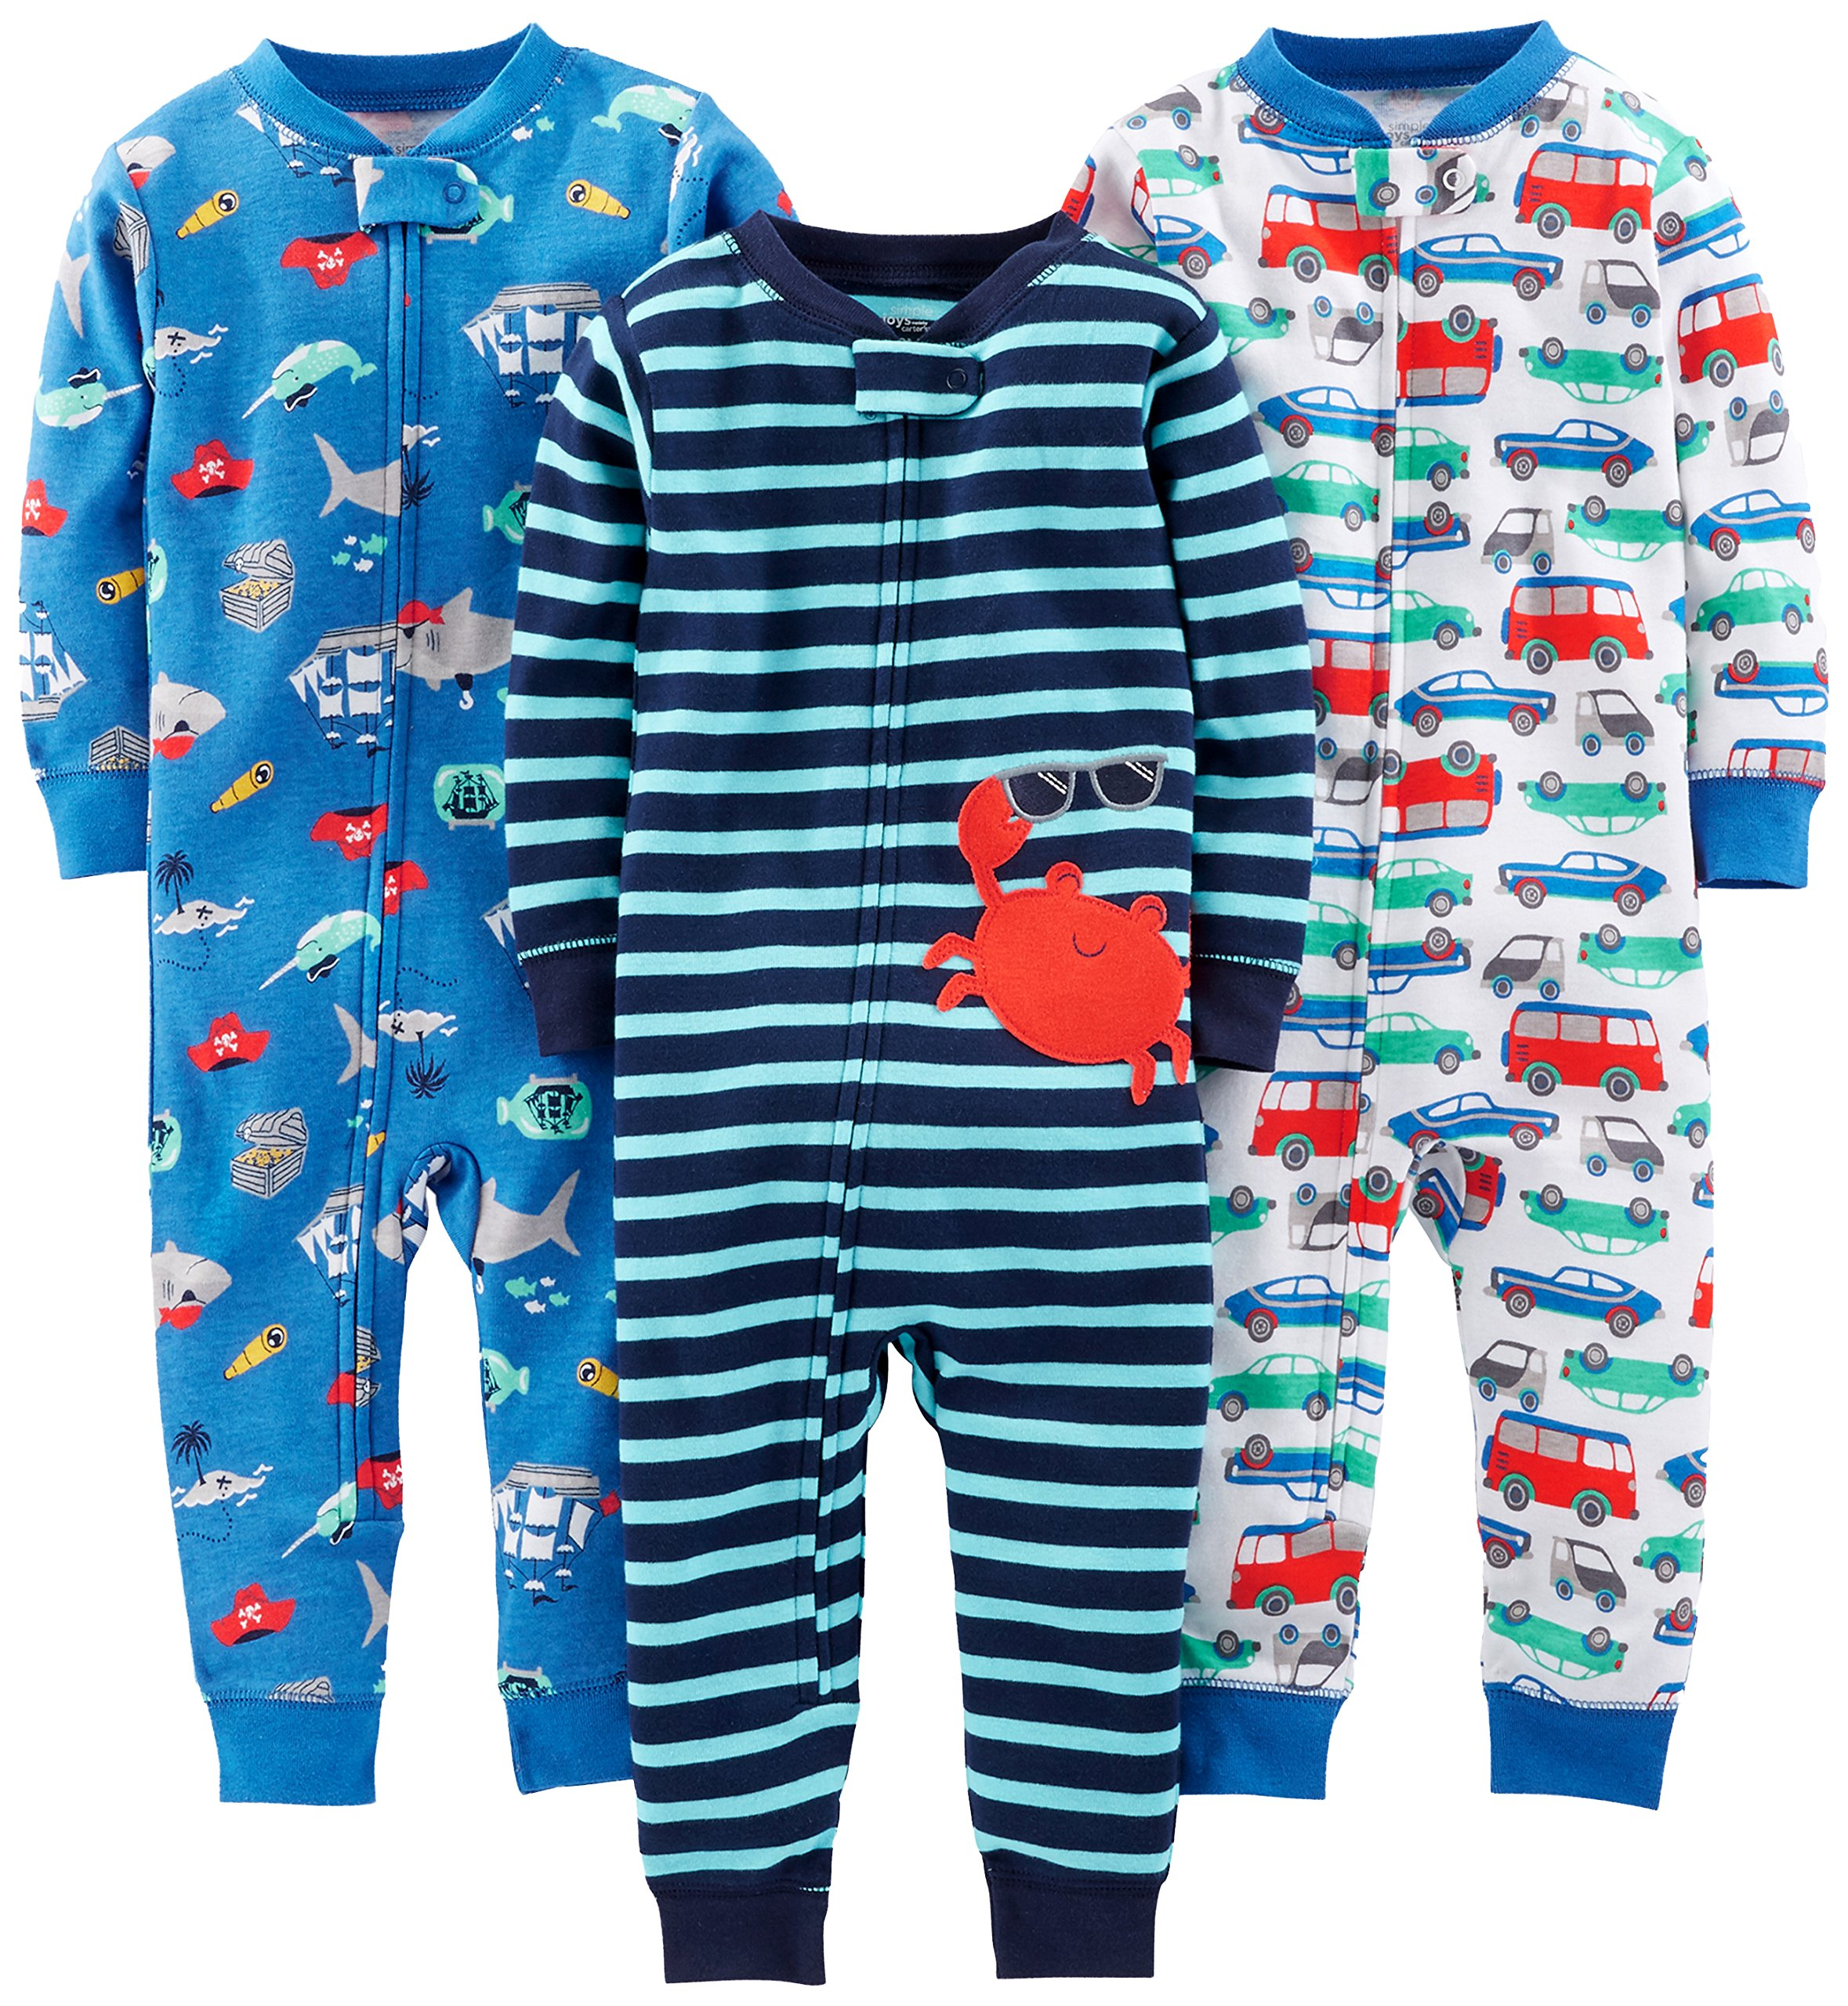 Simple Joys by Carter's Baby Boys' 3-Pack Snug Fit Footless Cotton Pajamas, Crab/Sea Creatures/Cars, 18 Months